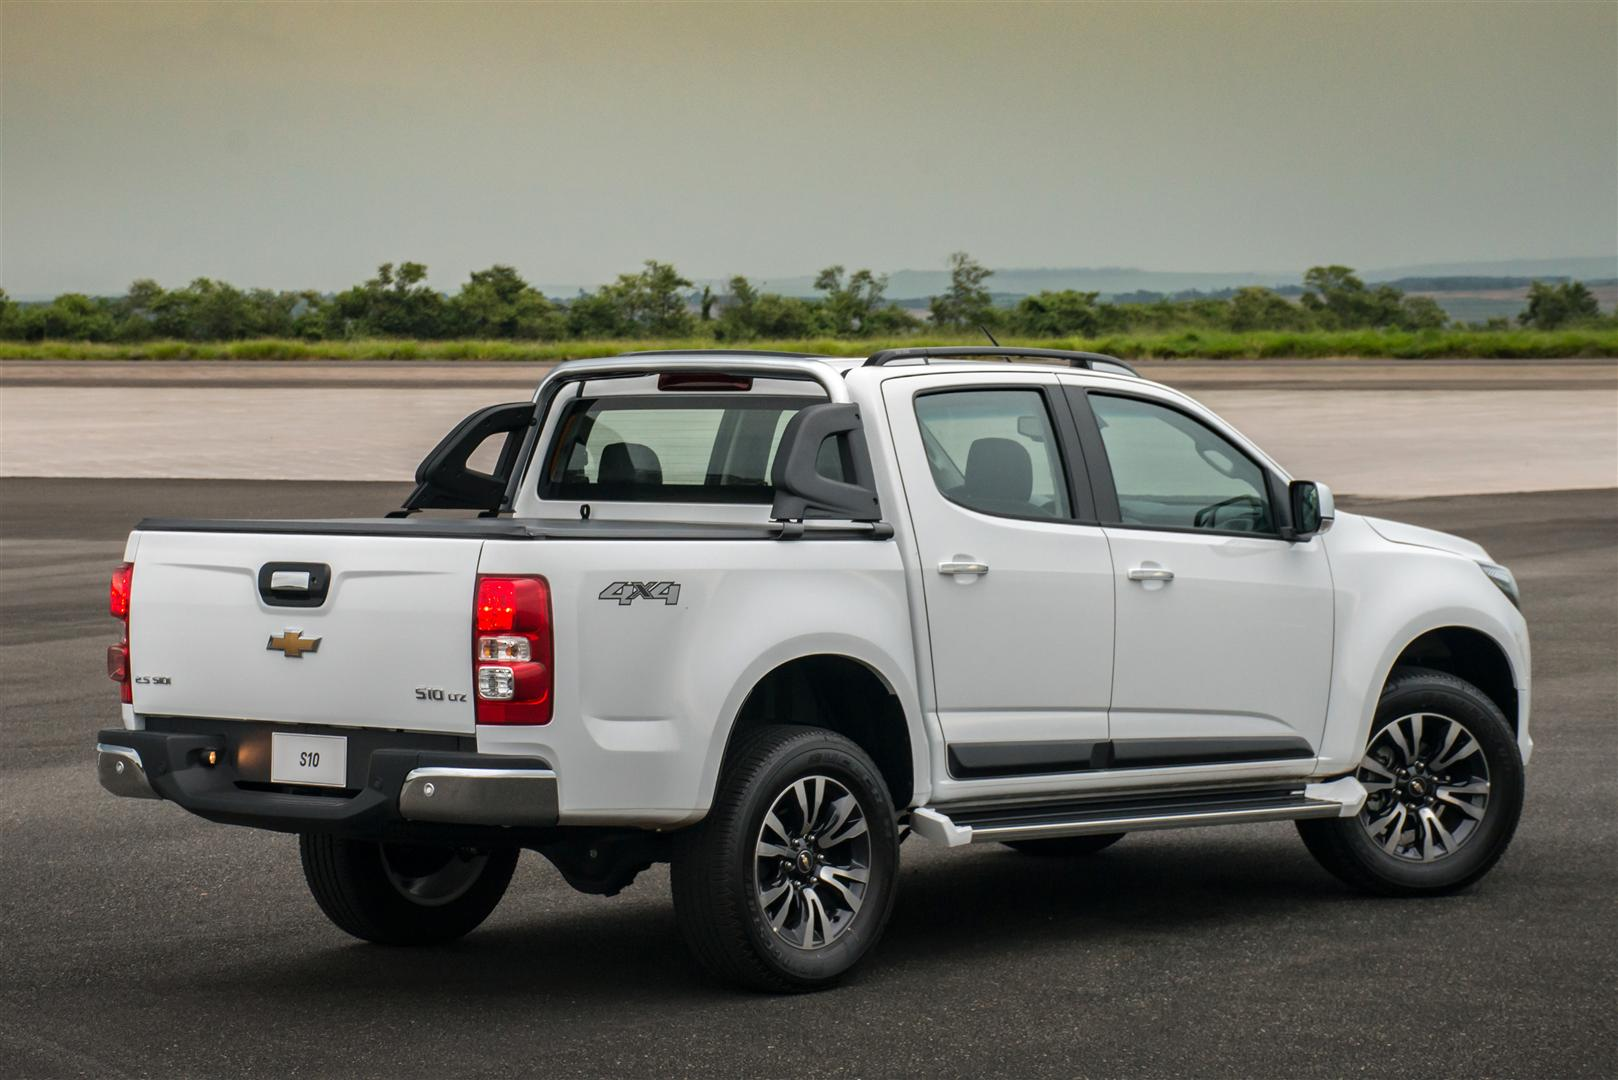 2018 Chevrolet S10 LTZ Towing Capacity